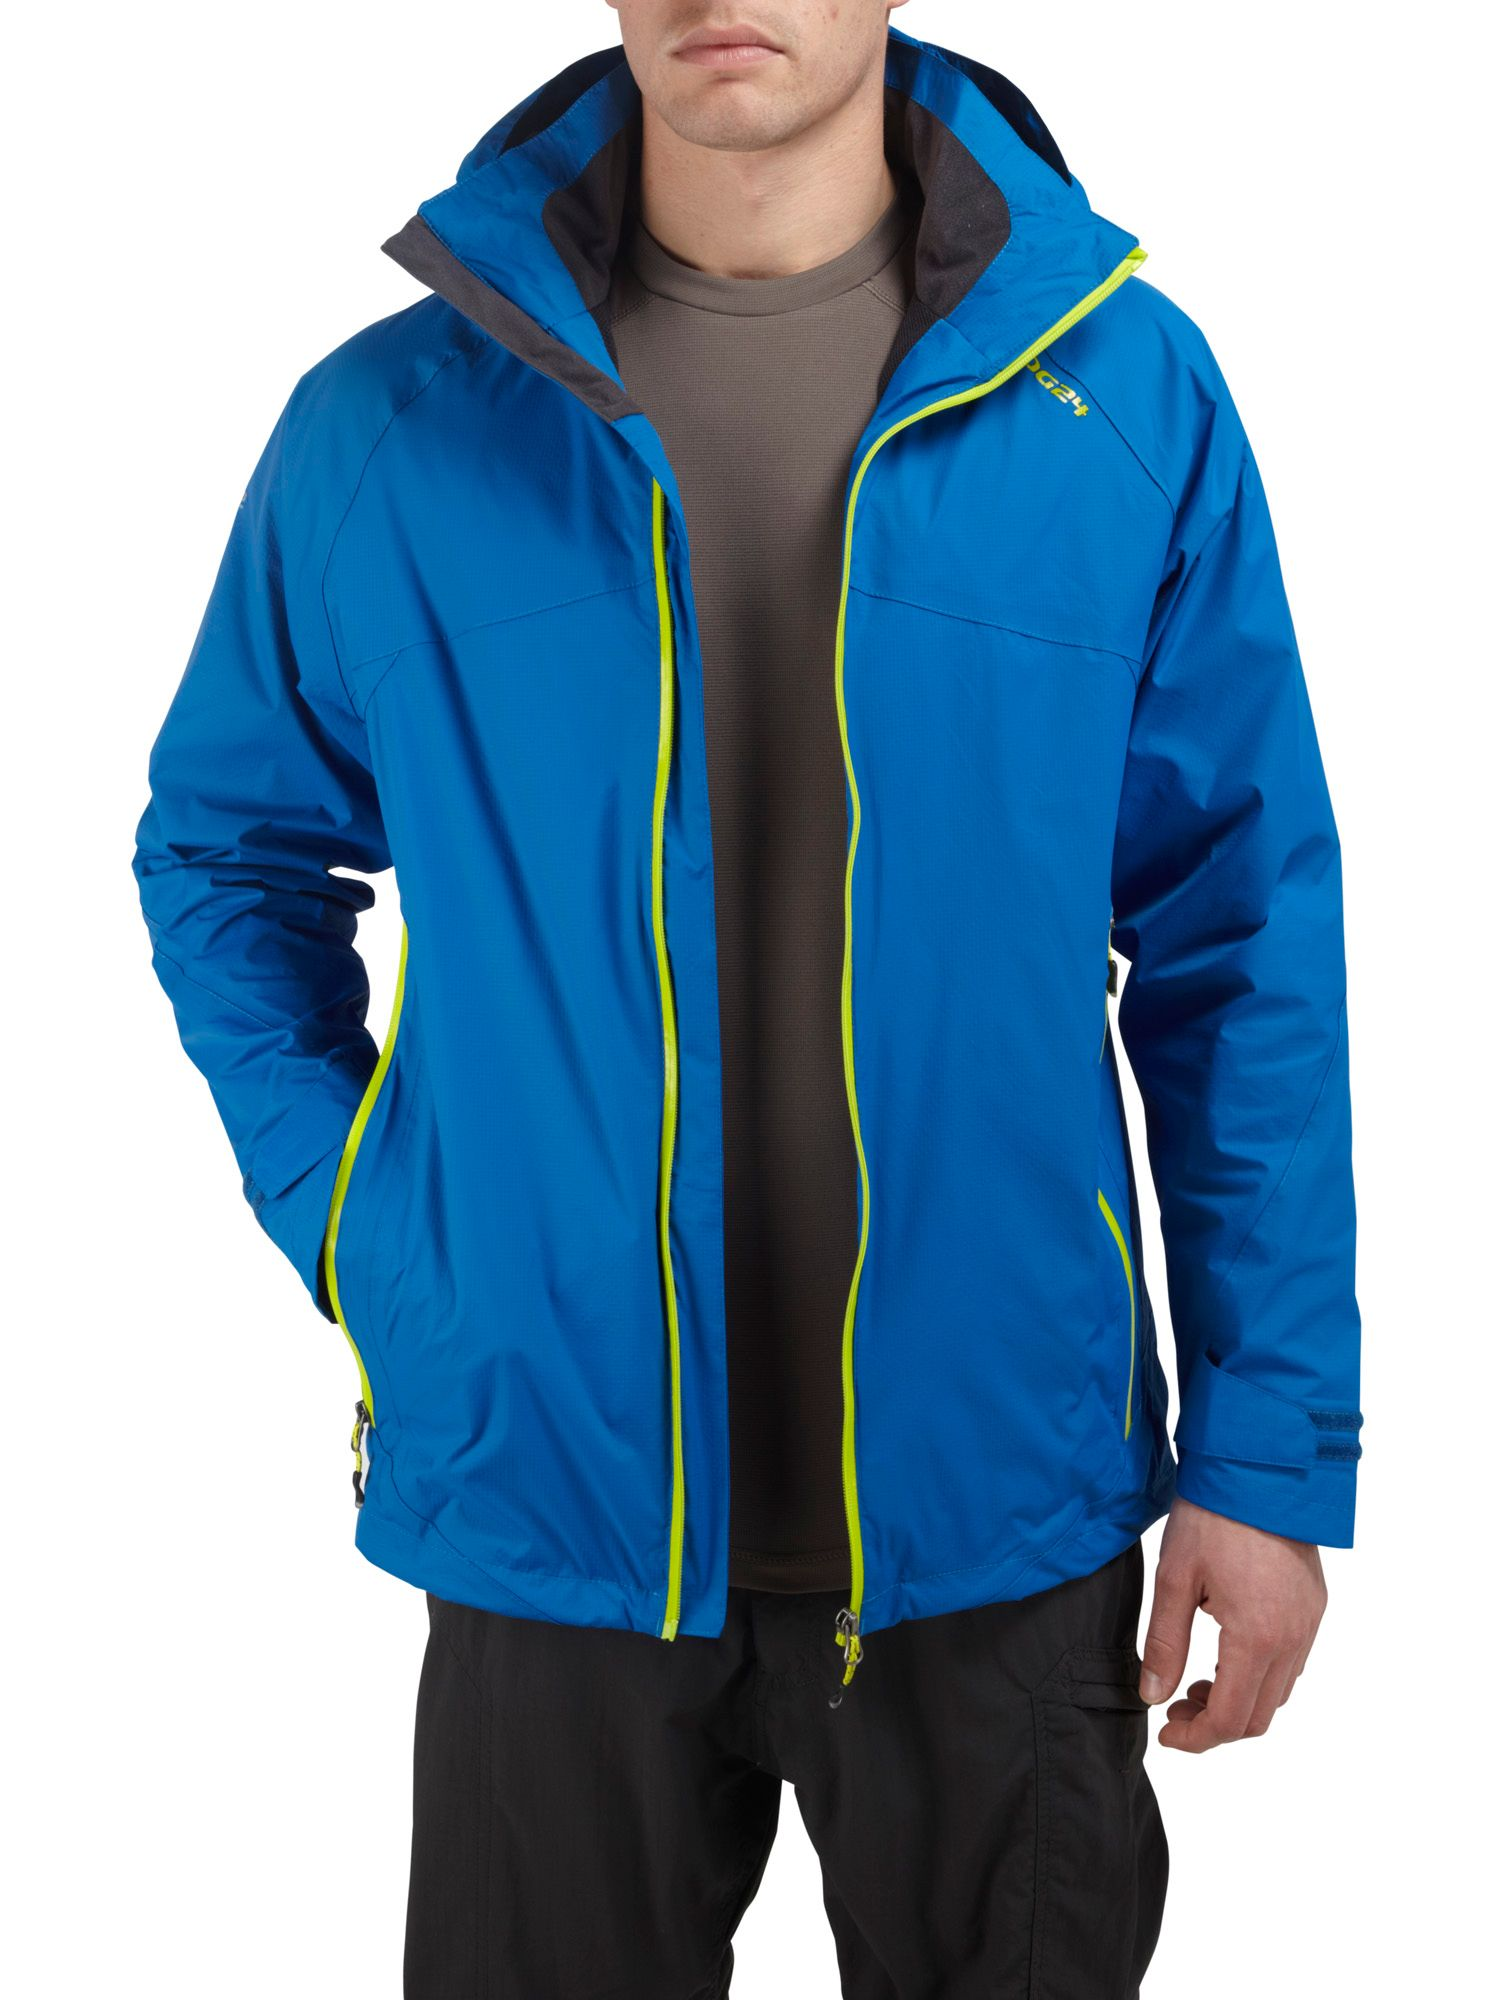 Atom milatex windbreaker hooded jacket